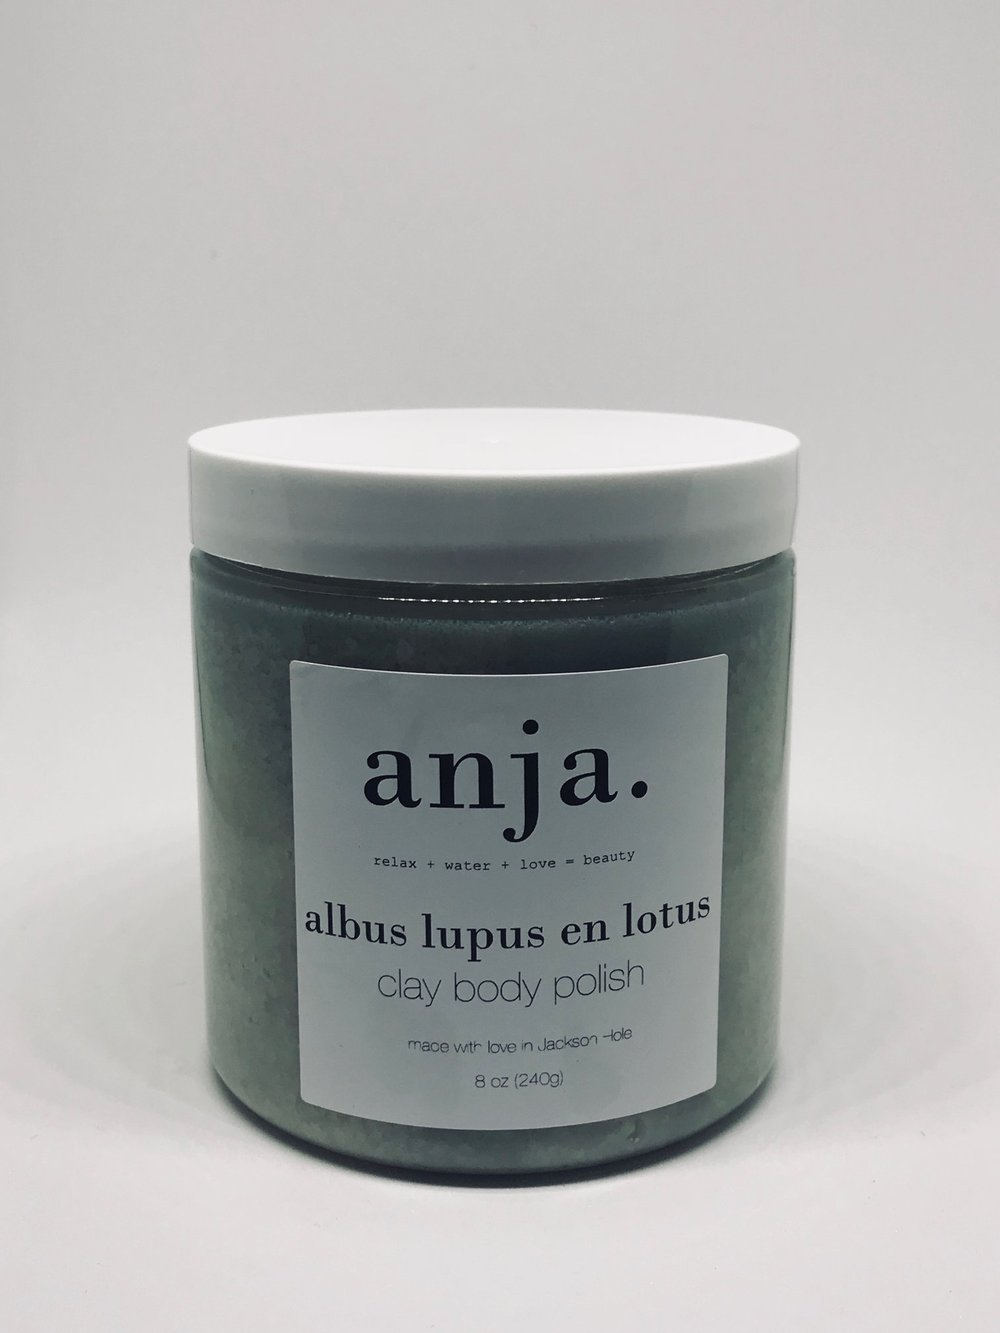 albus lupus en lotus white clay, blue tansy, white lotus body polish